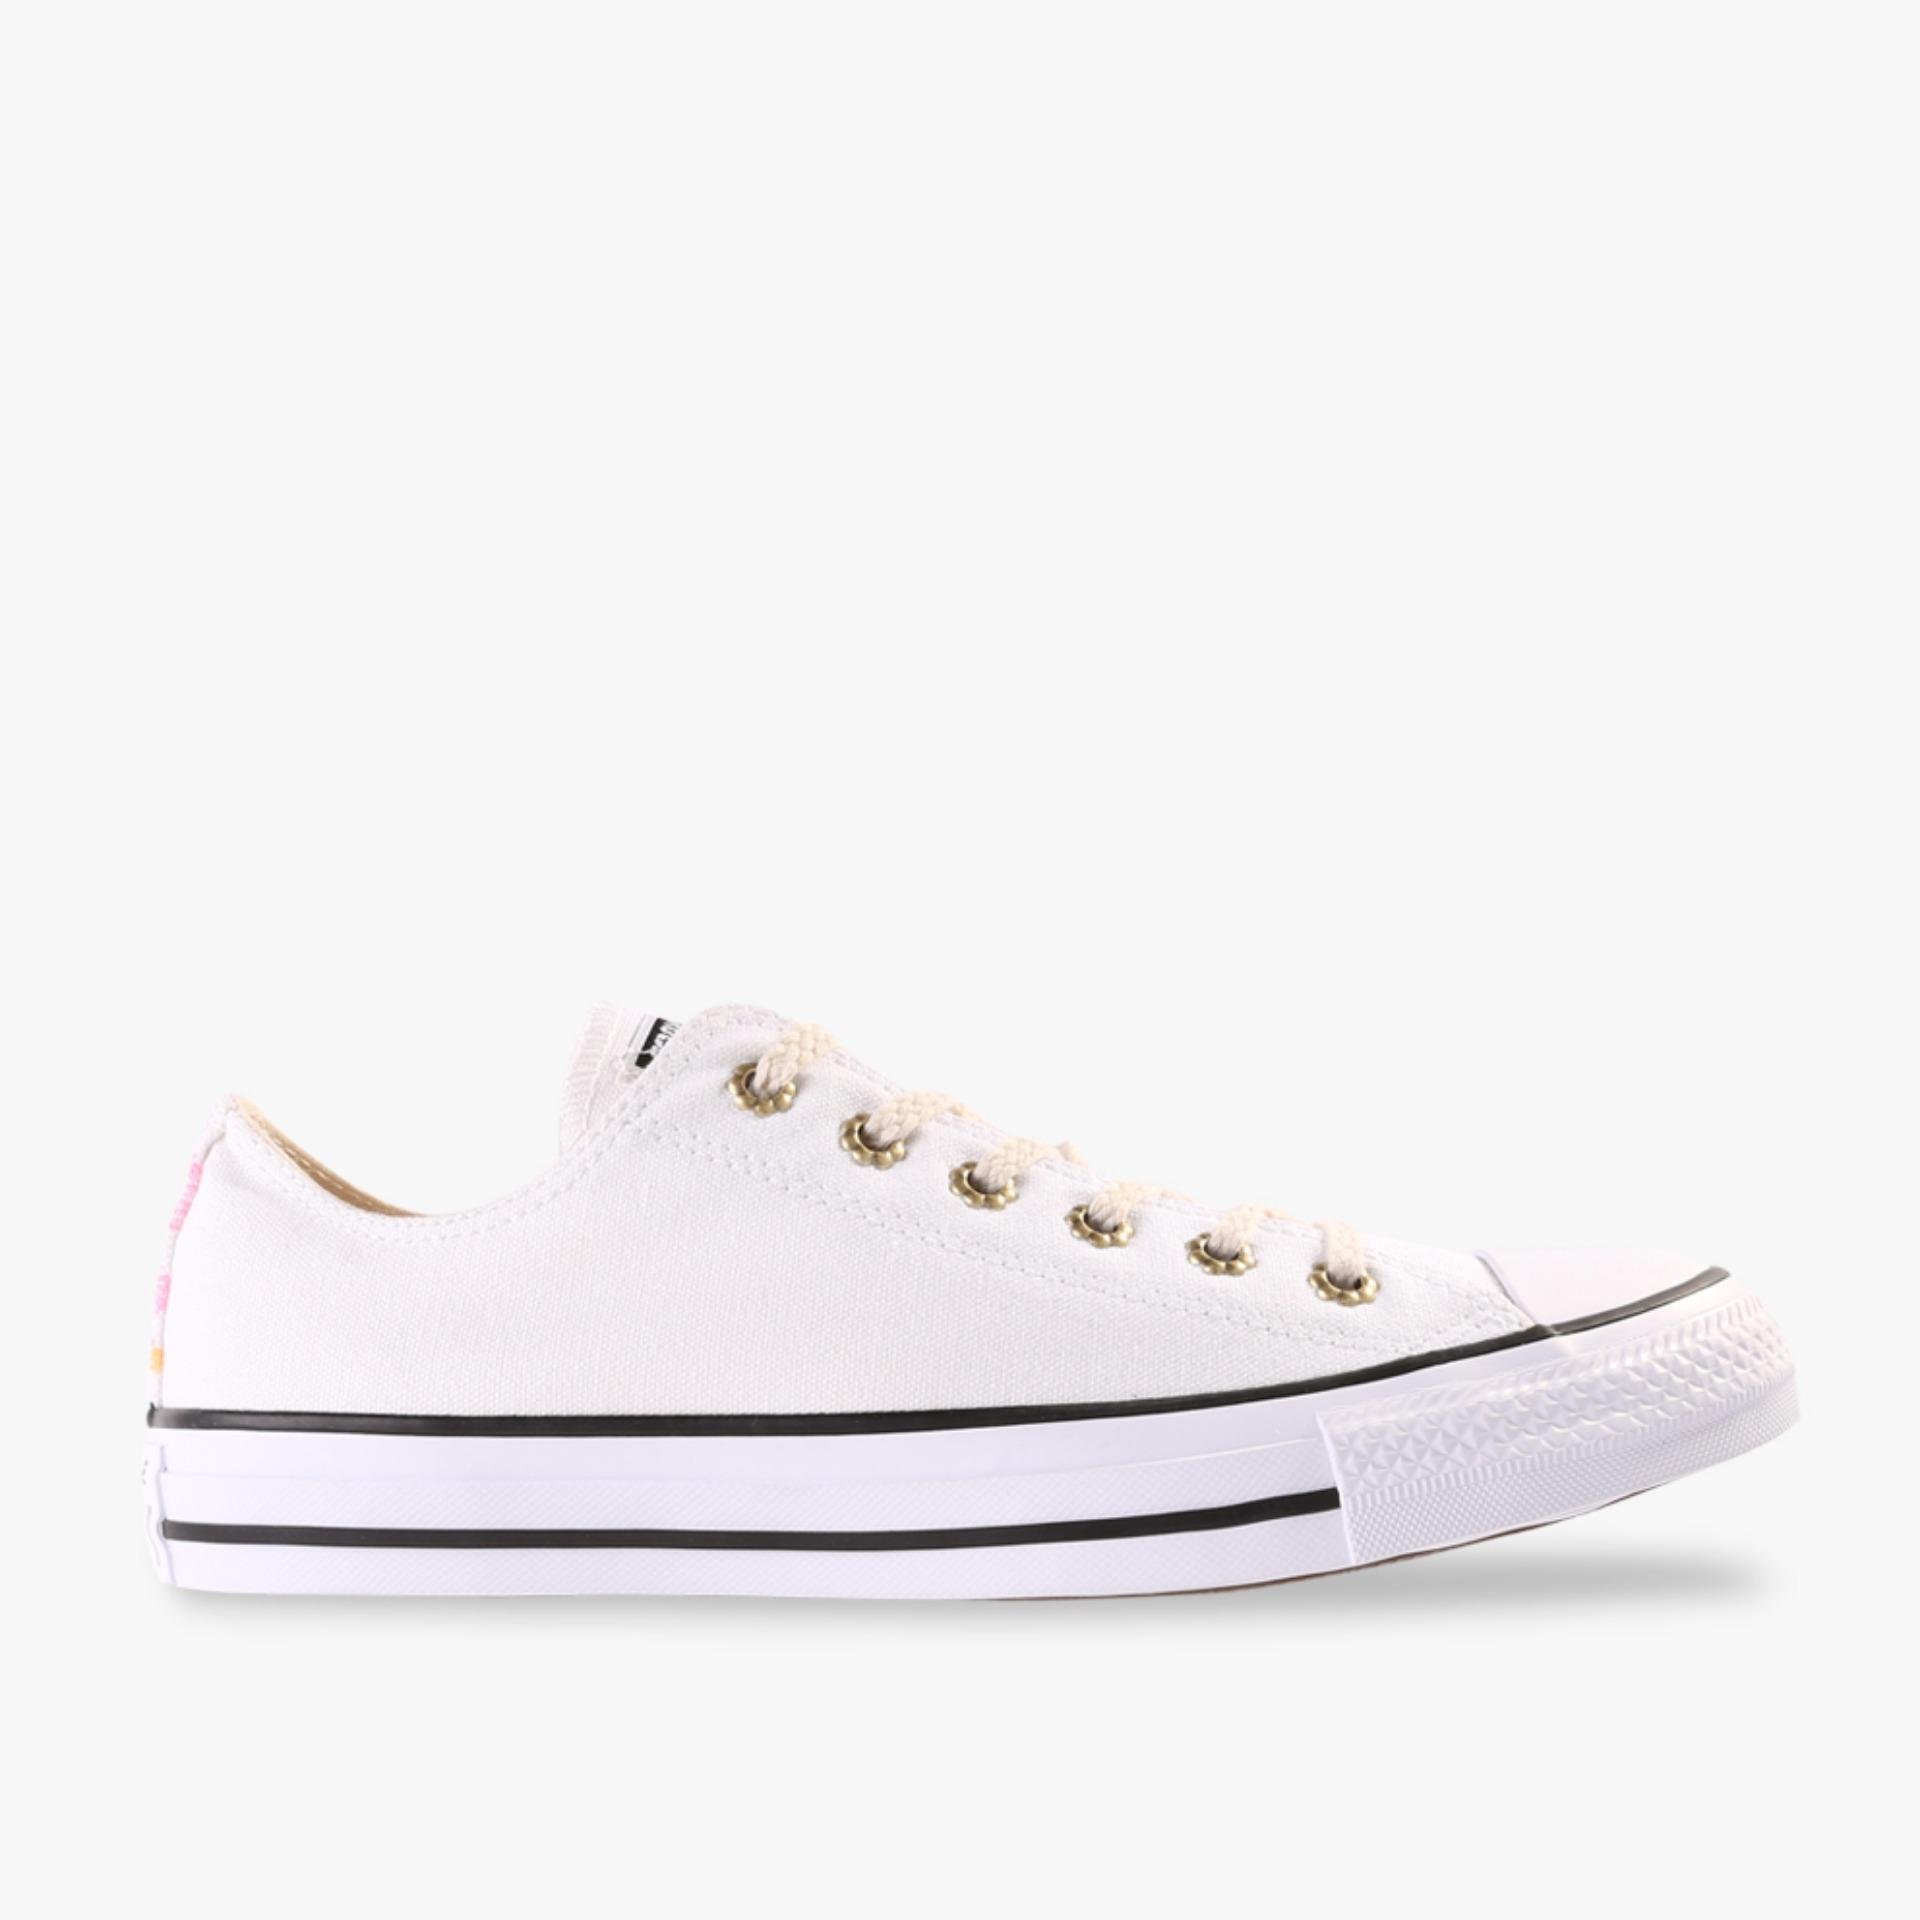 Review Converse Chuck Taylor All Star Ox Women S Sneakers Putih Di Indonesia